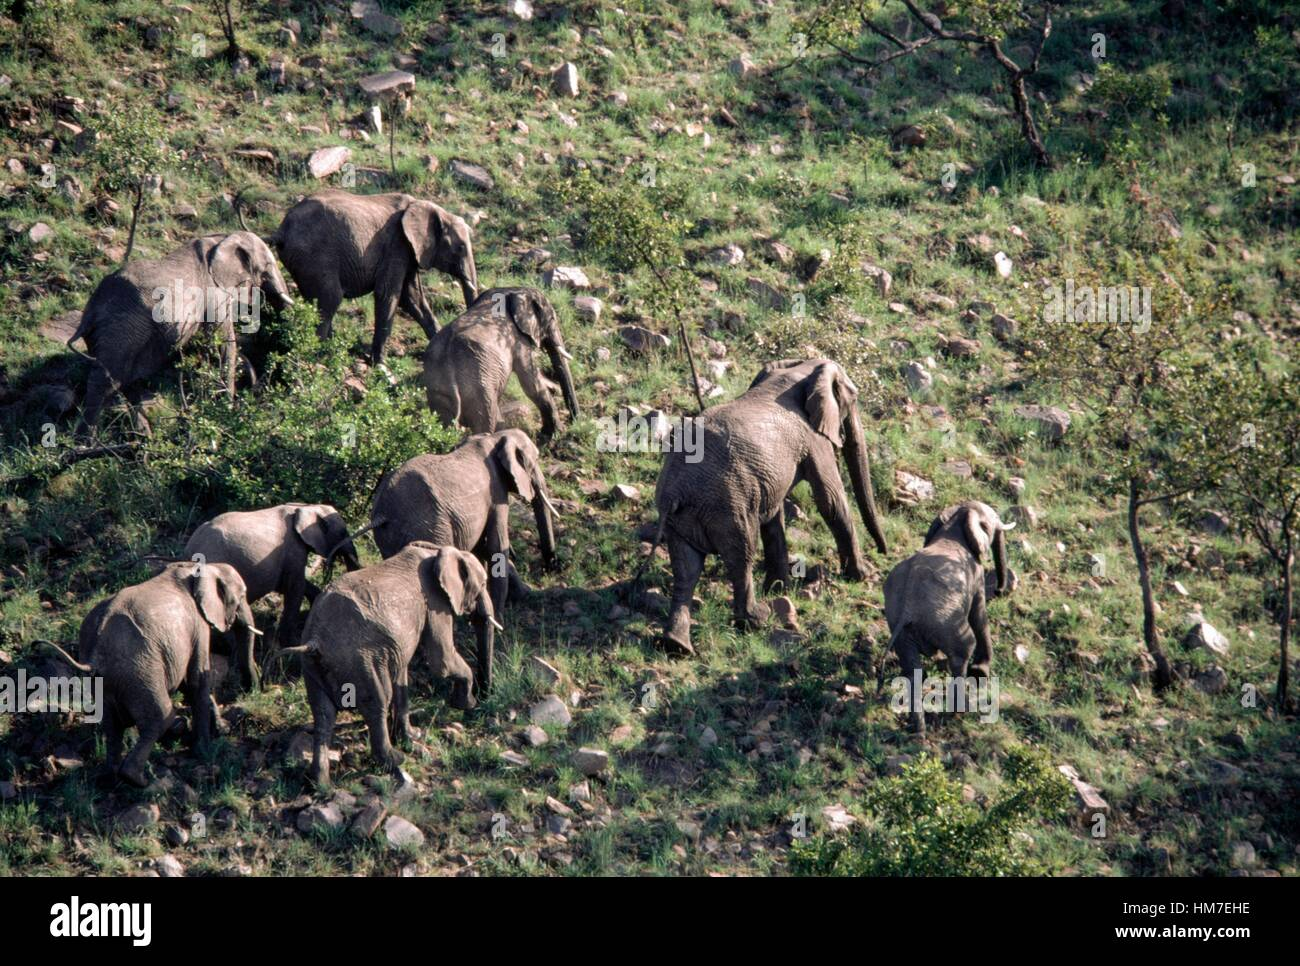 Elephants photographed during a balloon safaris, Masai Mara National Reserve, Kenya. - Stock Image